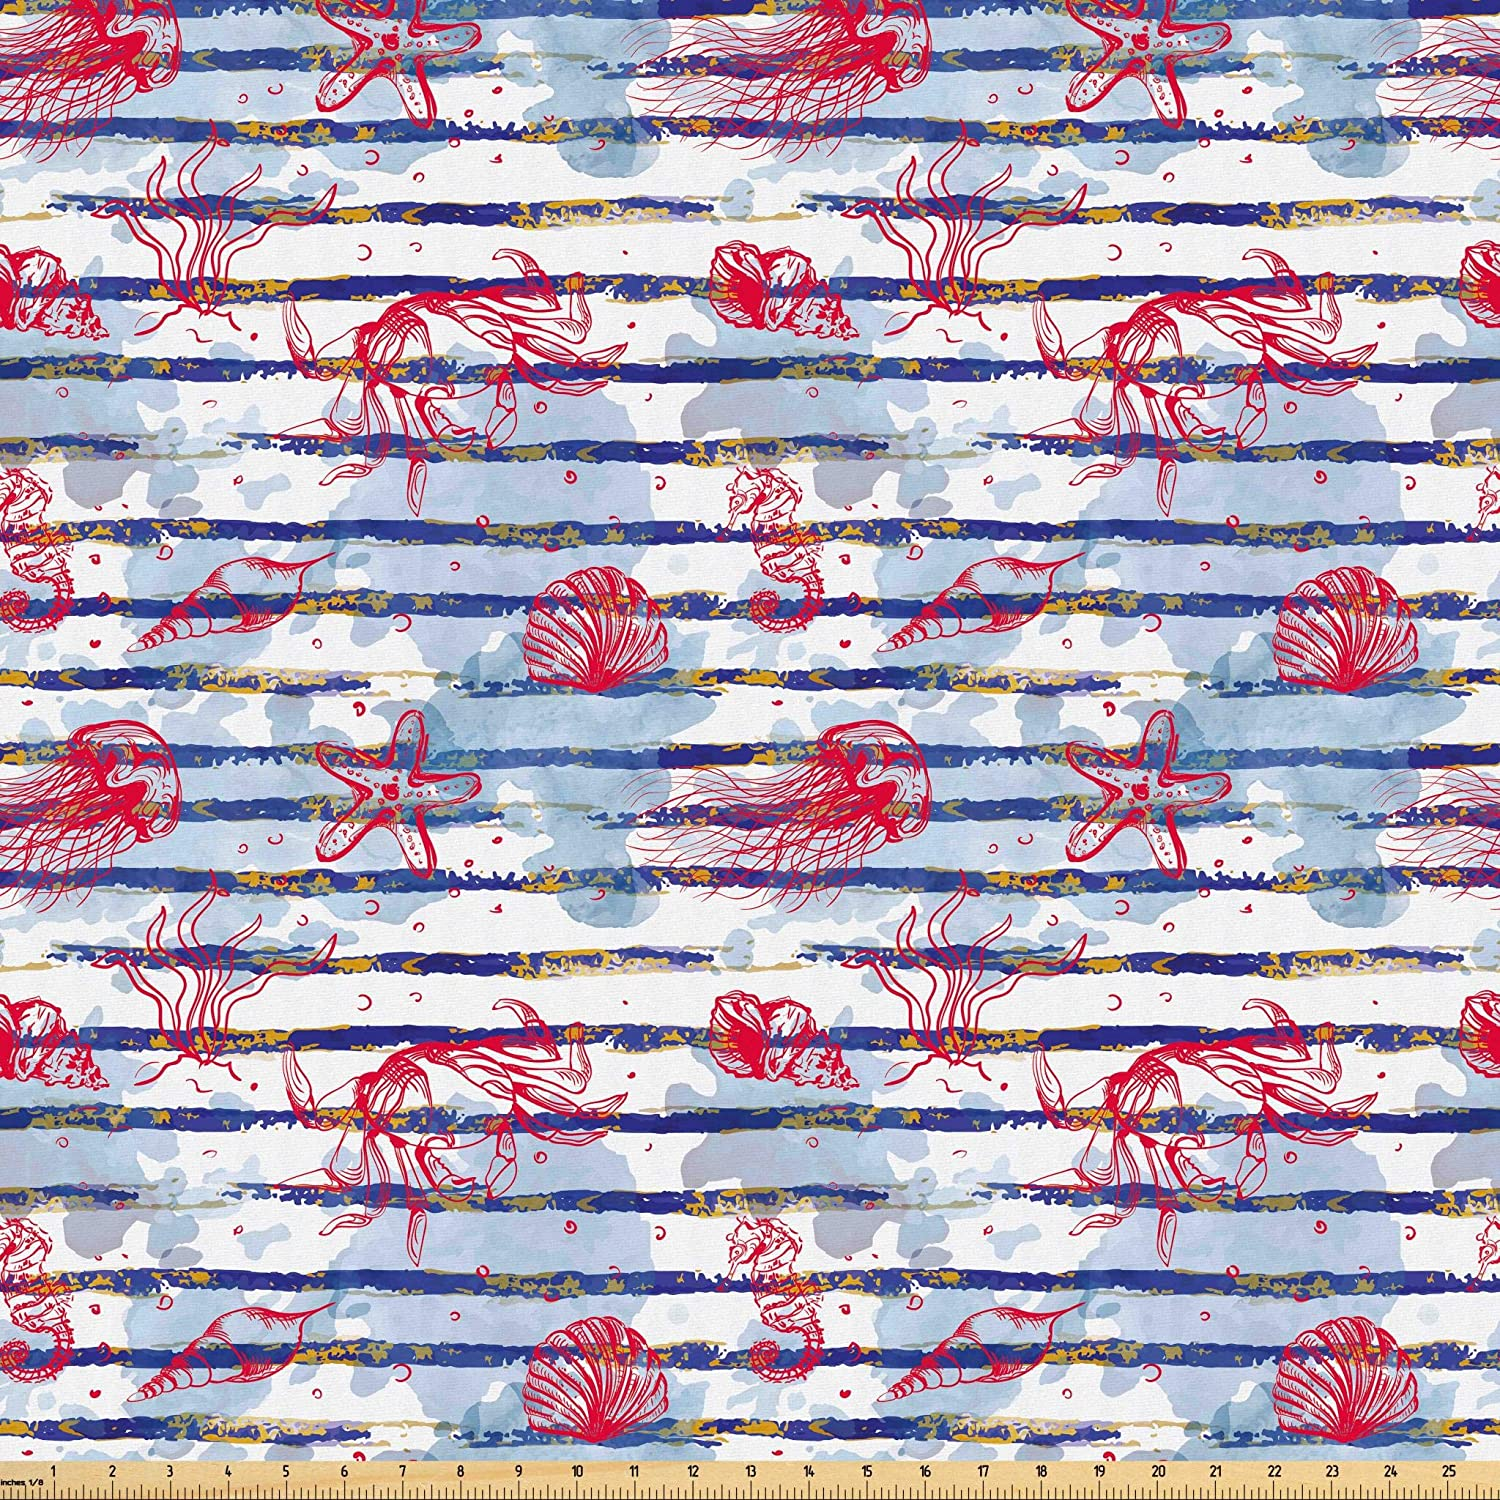 Lunarable Underwater Fabric by The Yard, Watercolor Stripes and Ocean Nature Seashells Crabs and Starfishes, Microfiber Fabric for Arts and Crafts Textiles & Decor, 5 Yards, Multicolor